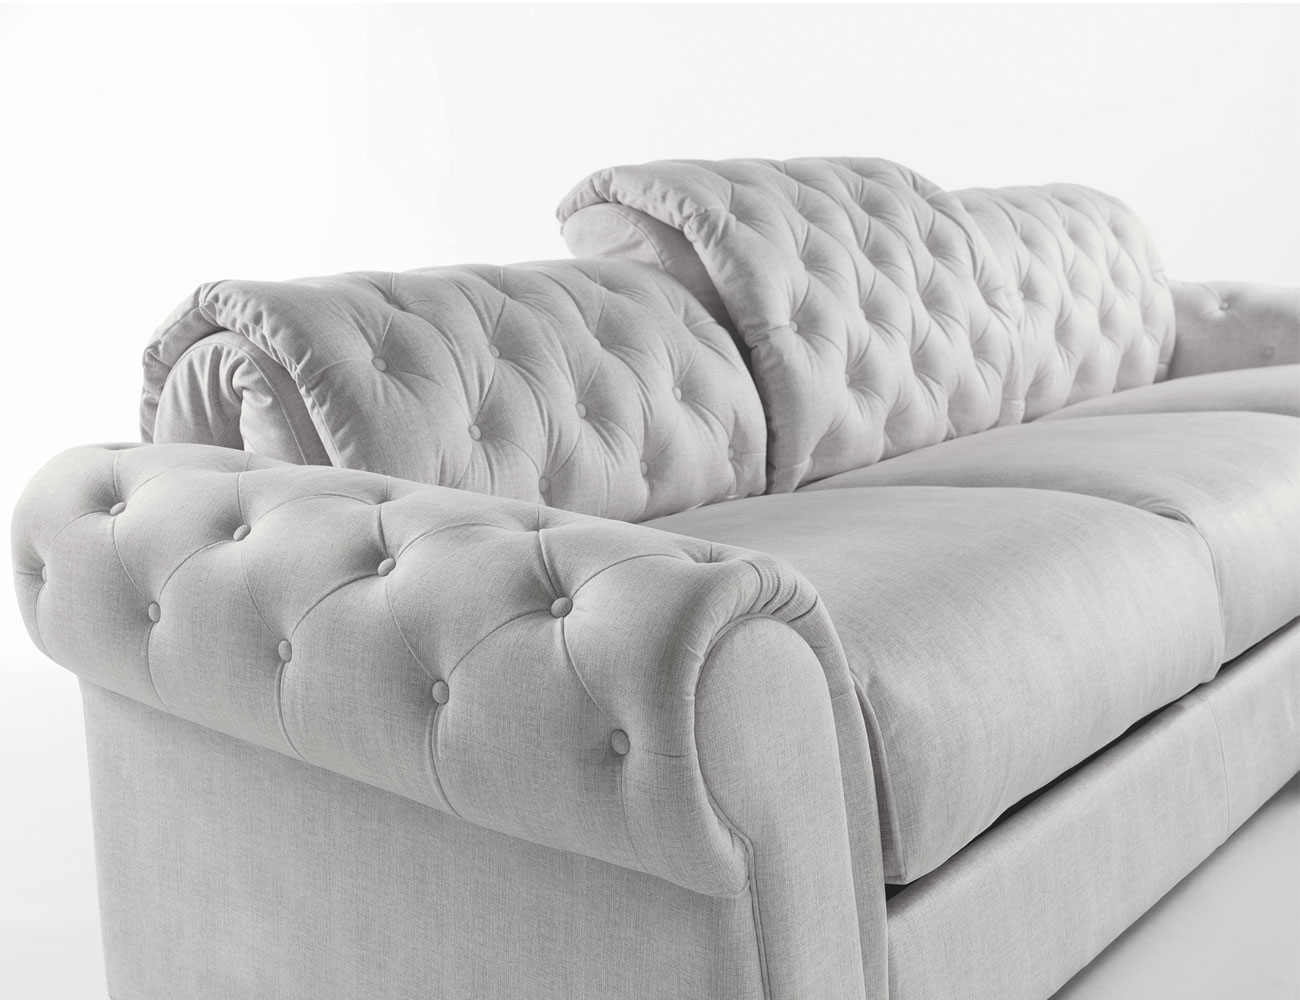 Sofa chaiselongue gran lujo decorativo capitone blanco tela 154